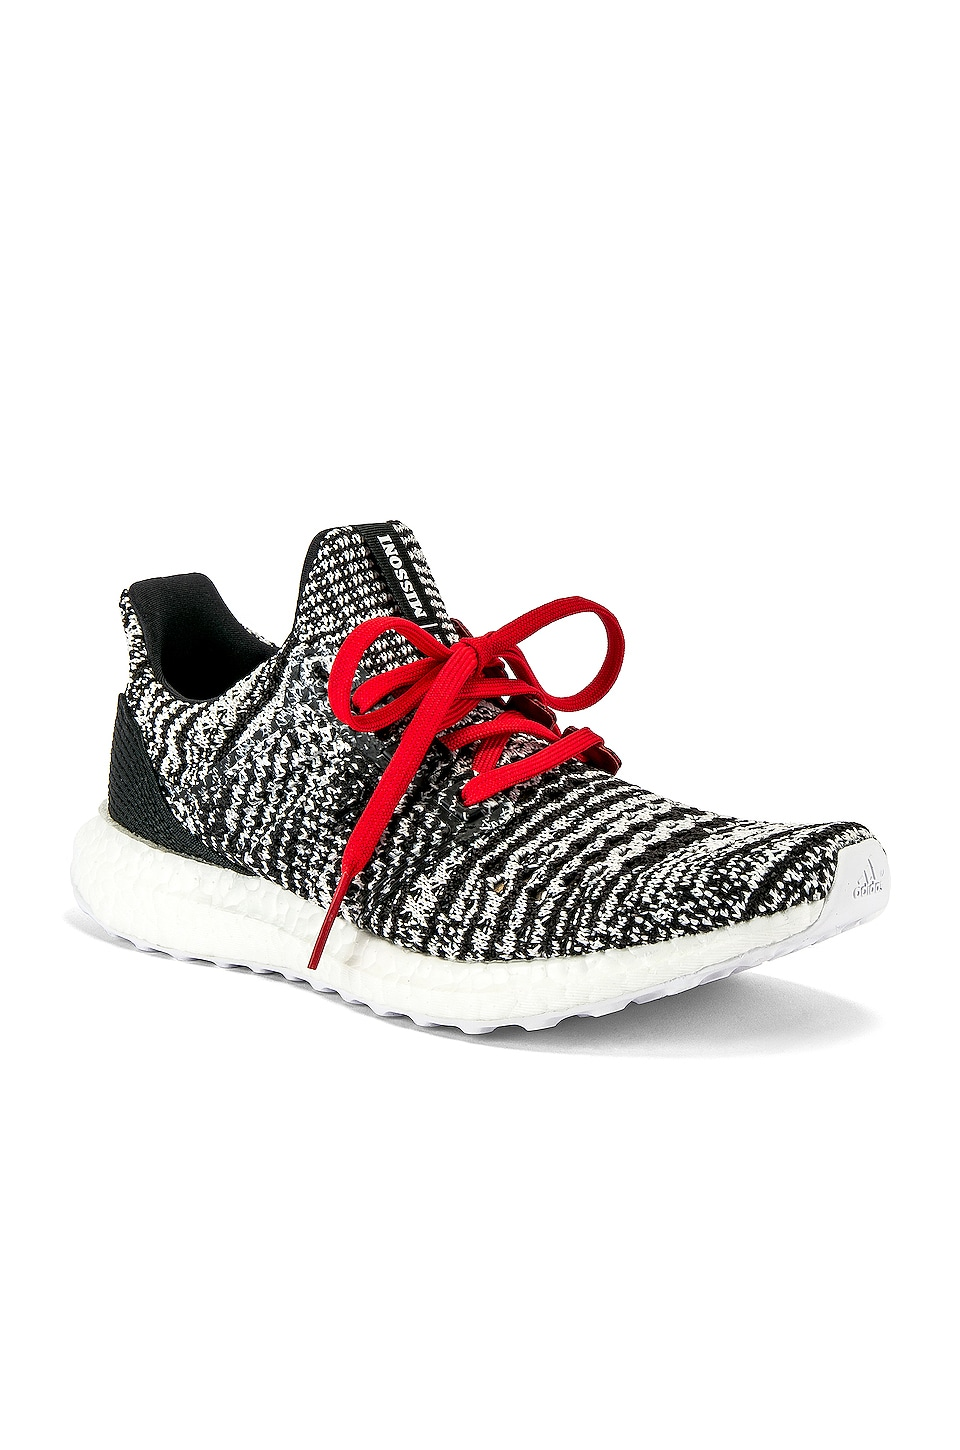 adidas by MISSONI Ultraboost Clima Sneaker in Black & White & Red